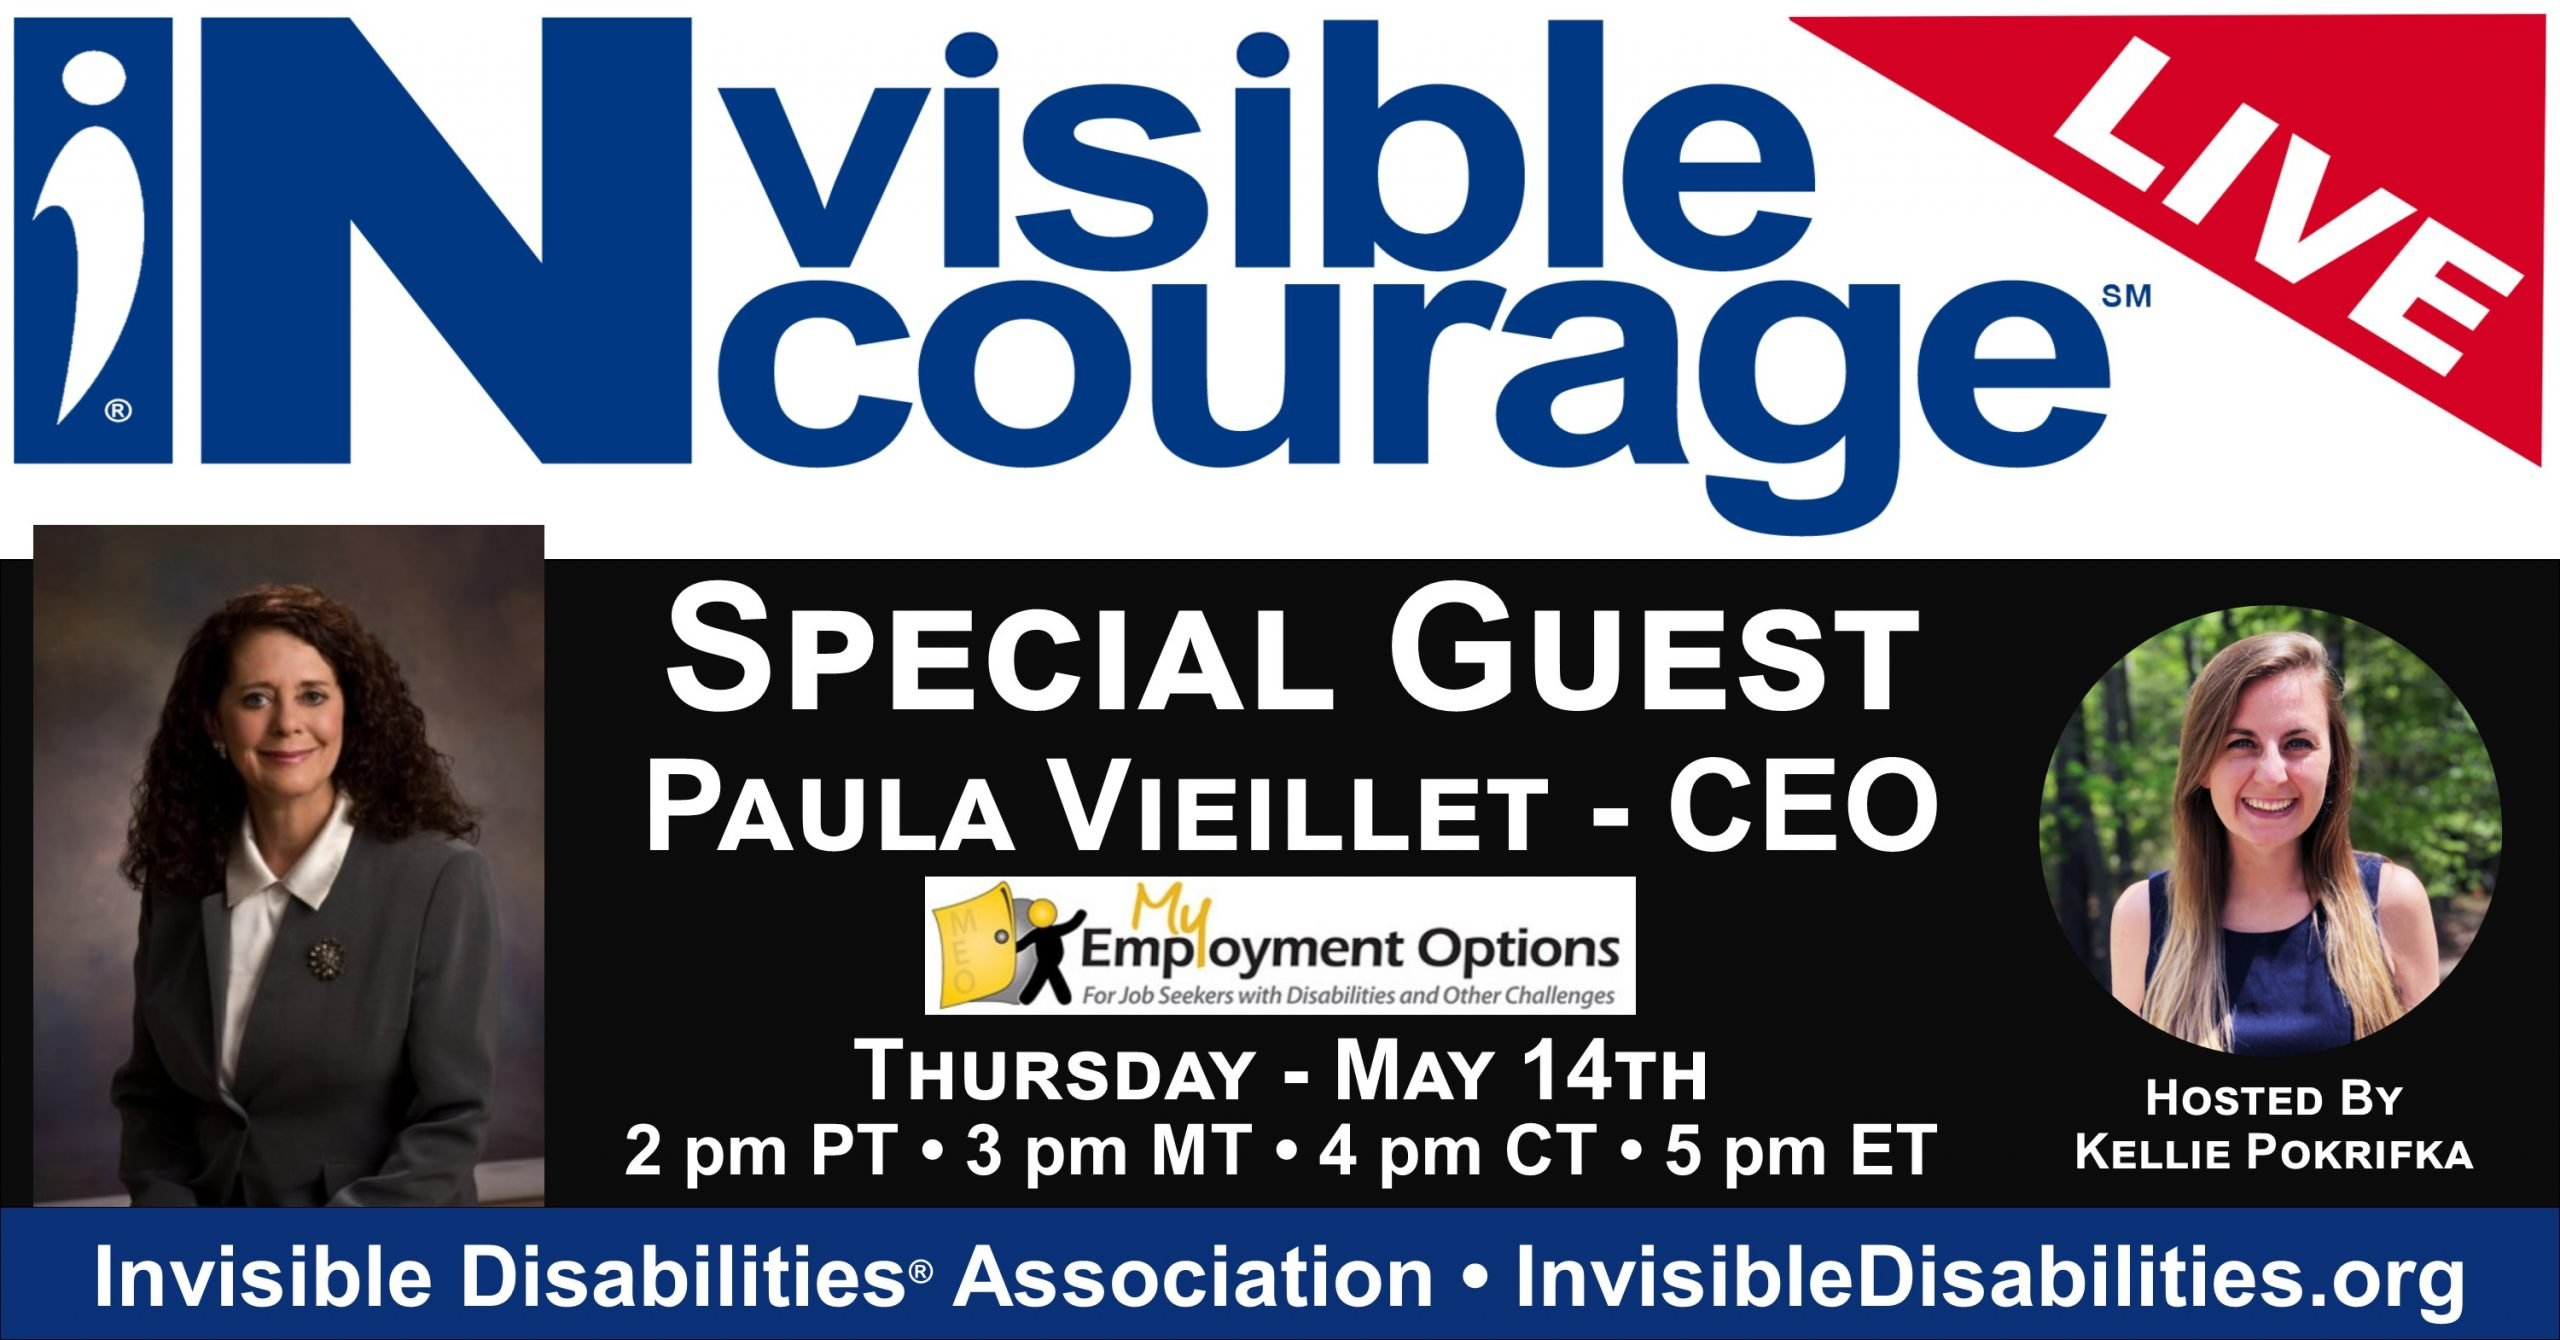 InVisible Encourage Live with Paula Vieillet, CEO - Employment Options - Invisible Disabilities Association